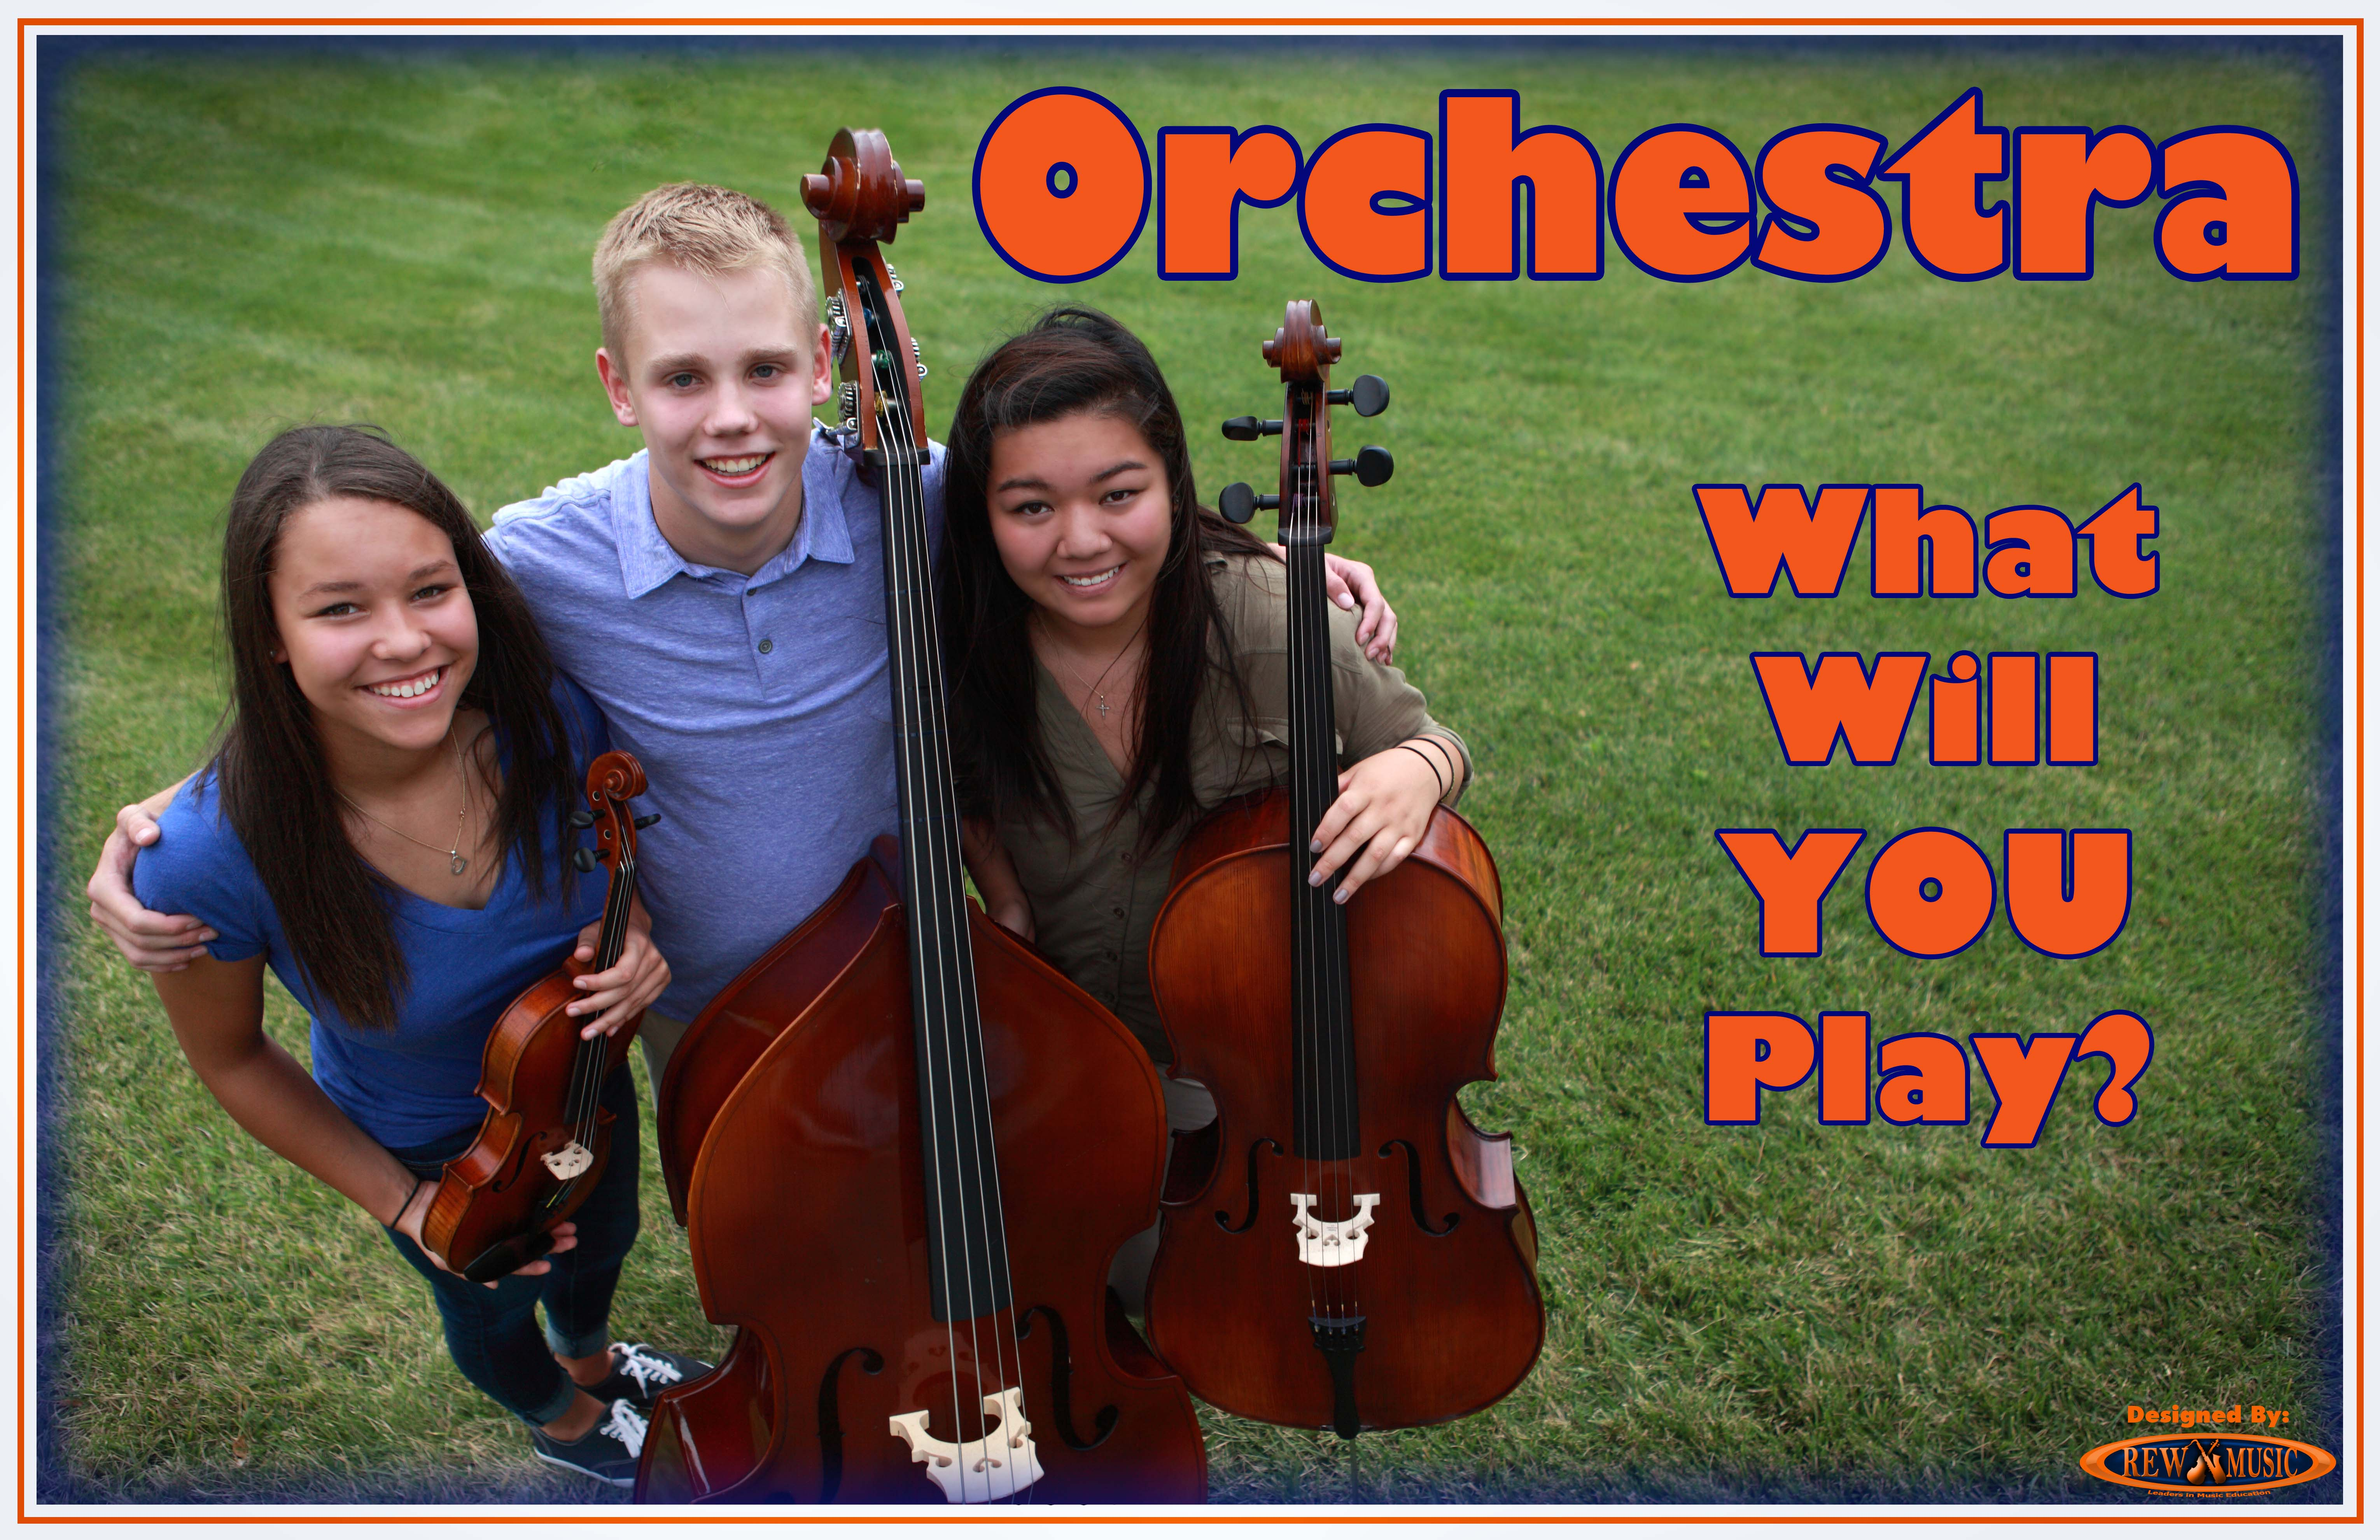 Join the School Orchestra Strings What Will You Play Group Grass